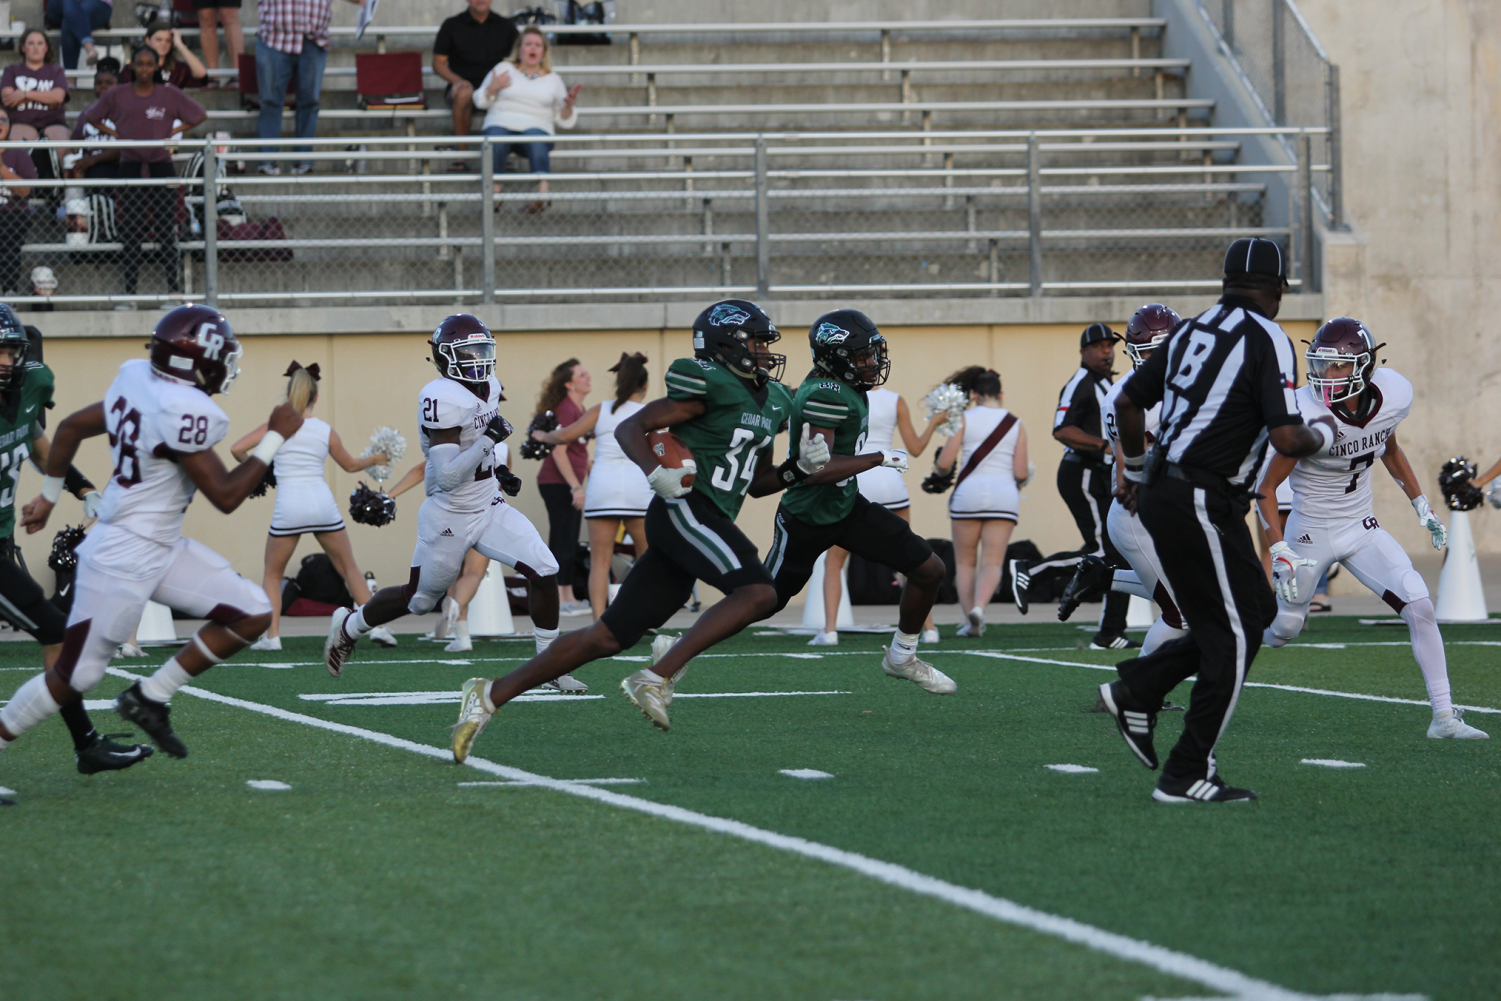 Junior WR Josh Cameron runs down the field against Katy Cinco Ranch. As district play begins this Friday, the team will need Gupton rocking every week as the team looks to win out and clinch a playoff berth.